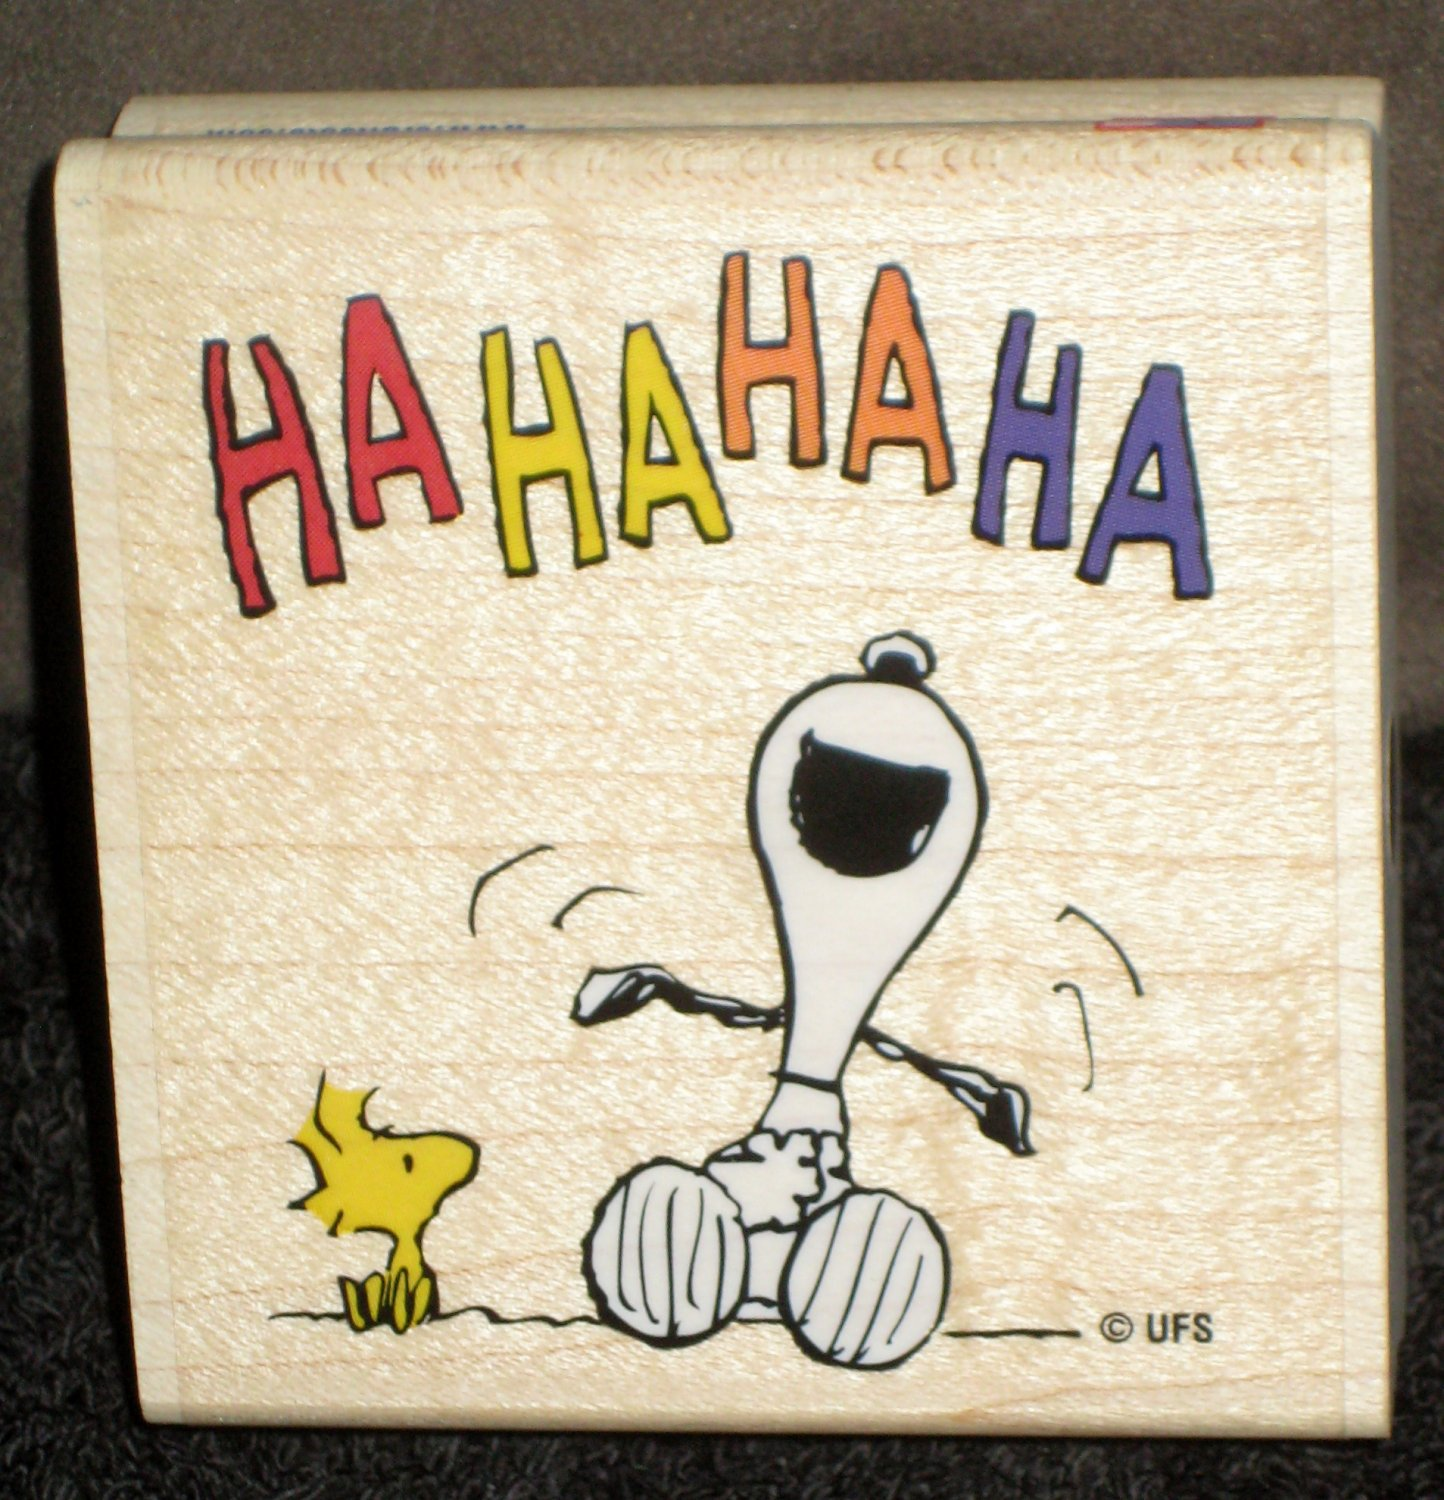 SOLD OUT Laughing Snoopy Woodstock Rubber Stamp G1038 Stampabilities Peanuts Gang 2002